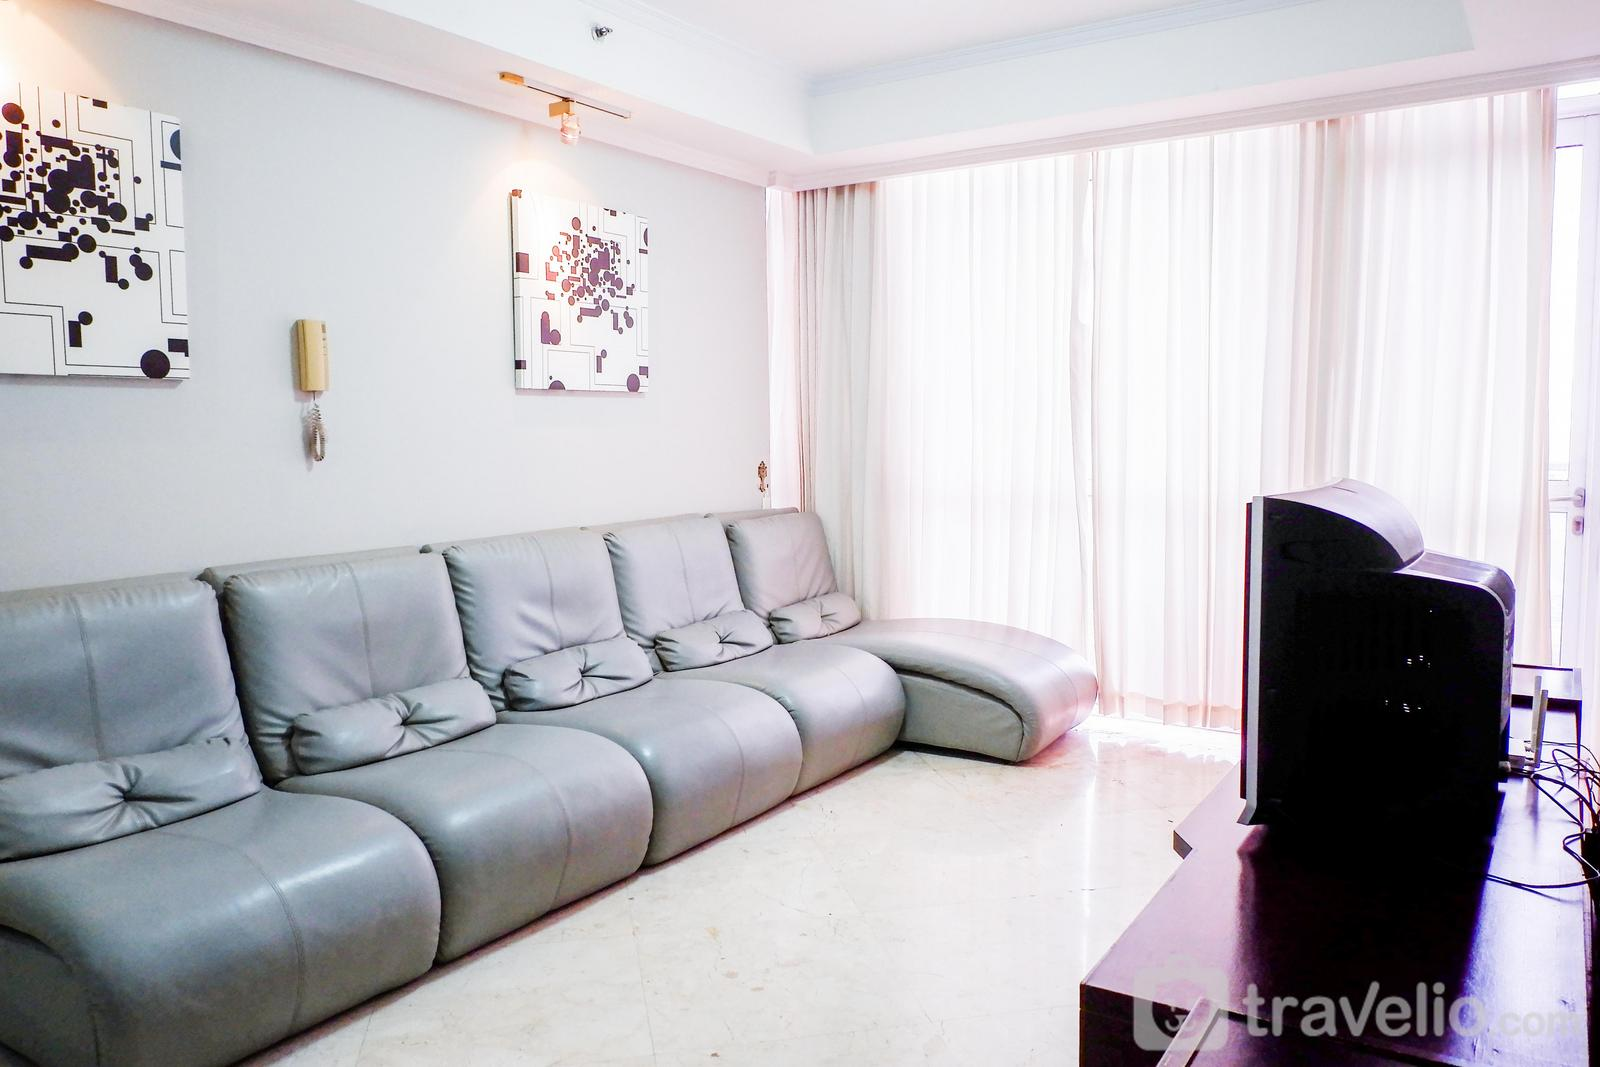 Bellagio Residence - Exclusive City View 3BR Apartment at Bellagio Residence By Travelio